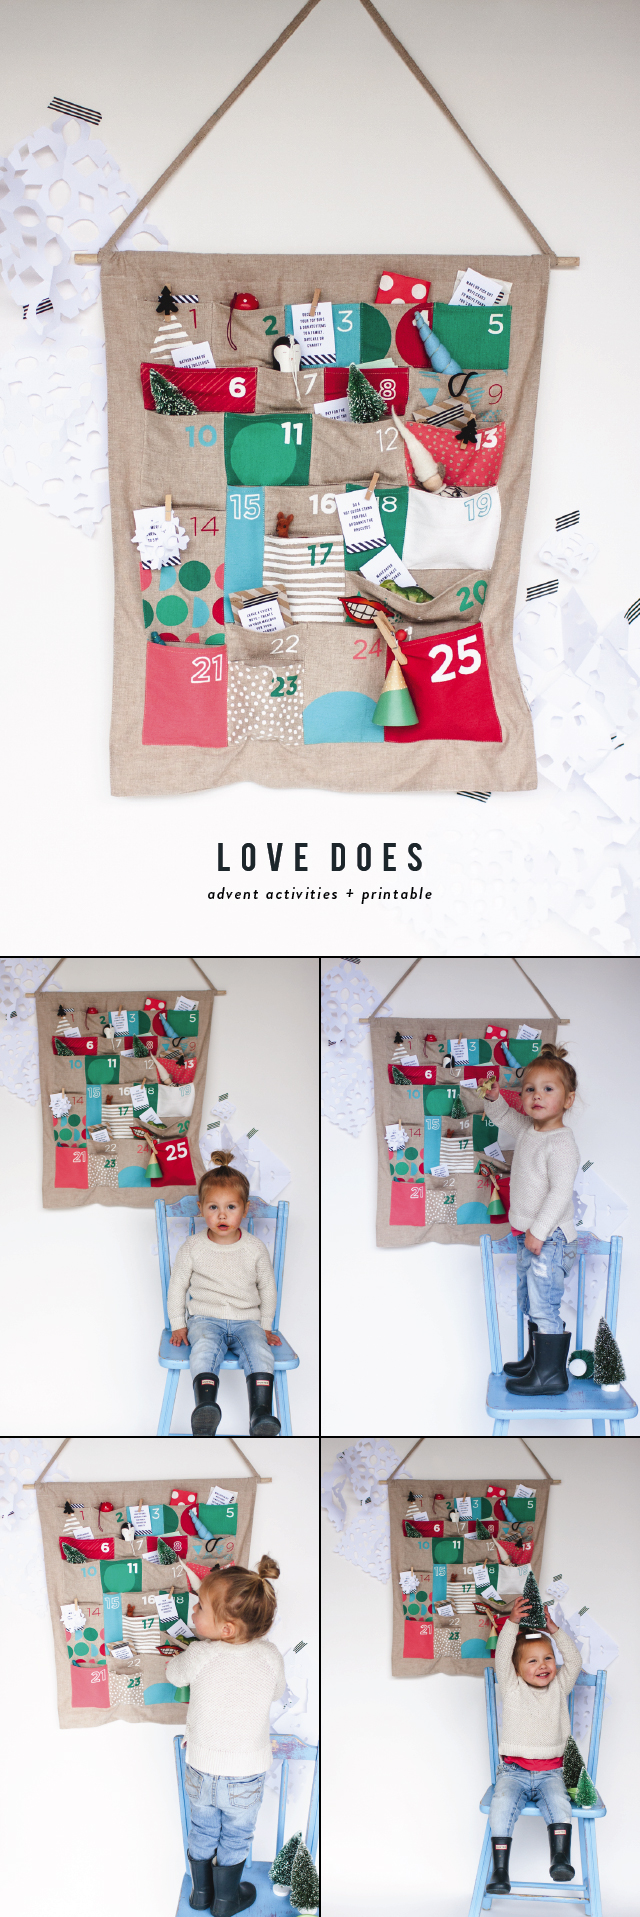 rae-ann-kelly-love-does-advent-printable-1